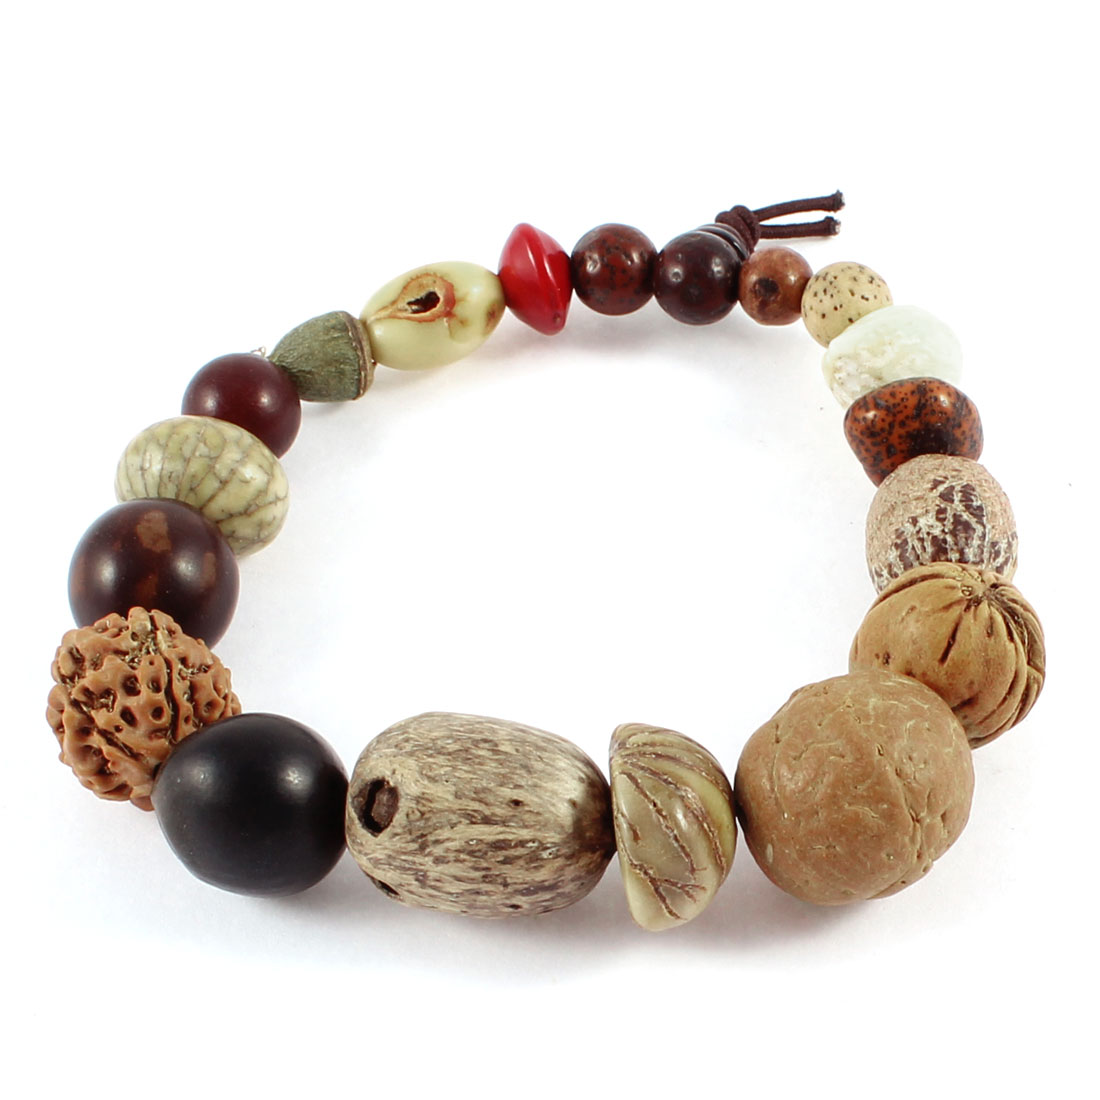 Bodhi Tree Seed Beads Tibet Buddhism Prayer Elastic Bracelet